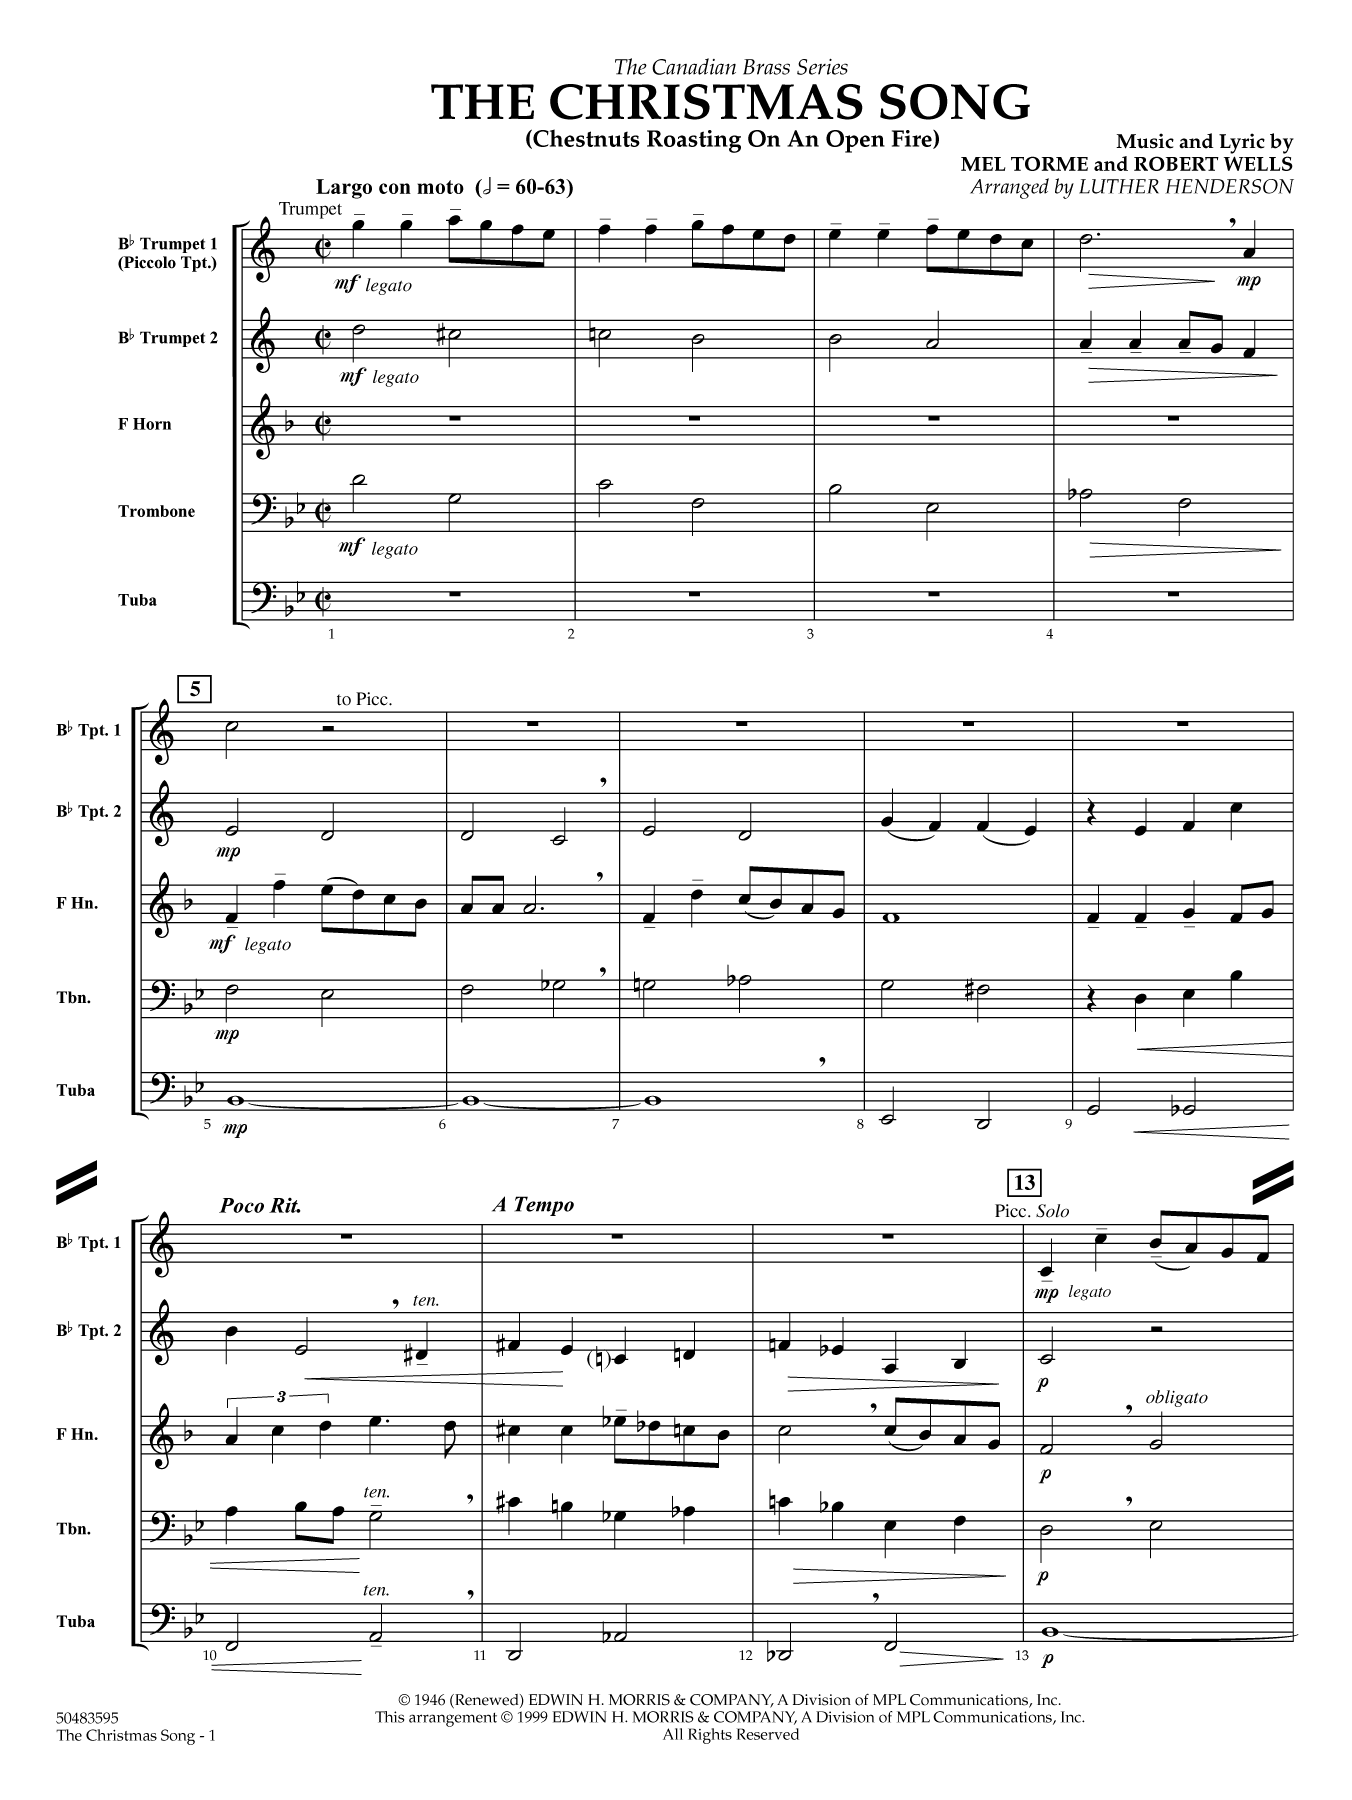 The Christmas Song (Chestnuts Roasting) - Full Score Sheet Music